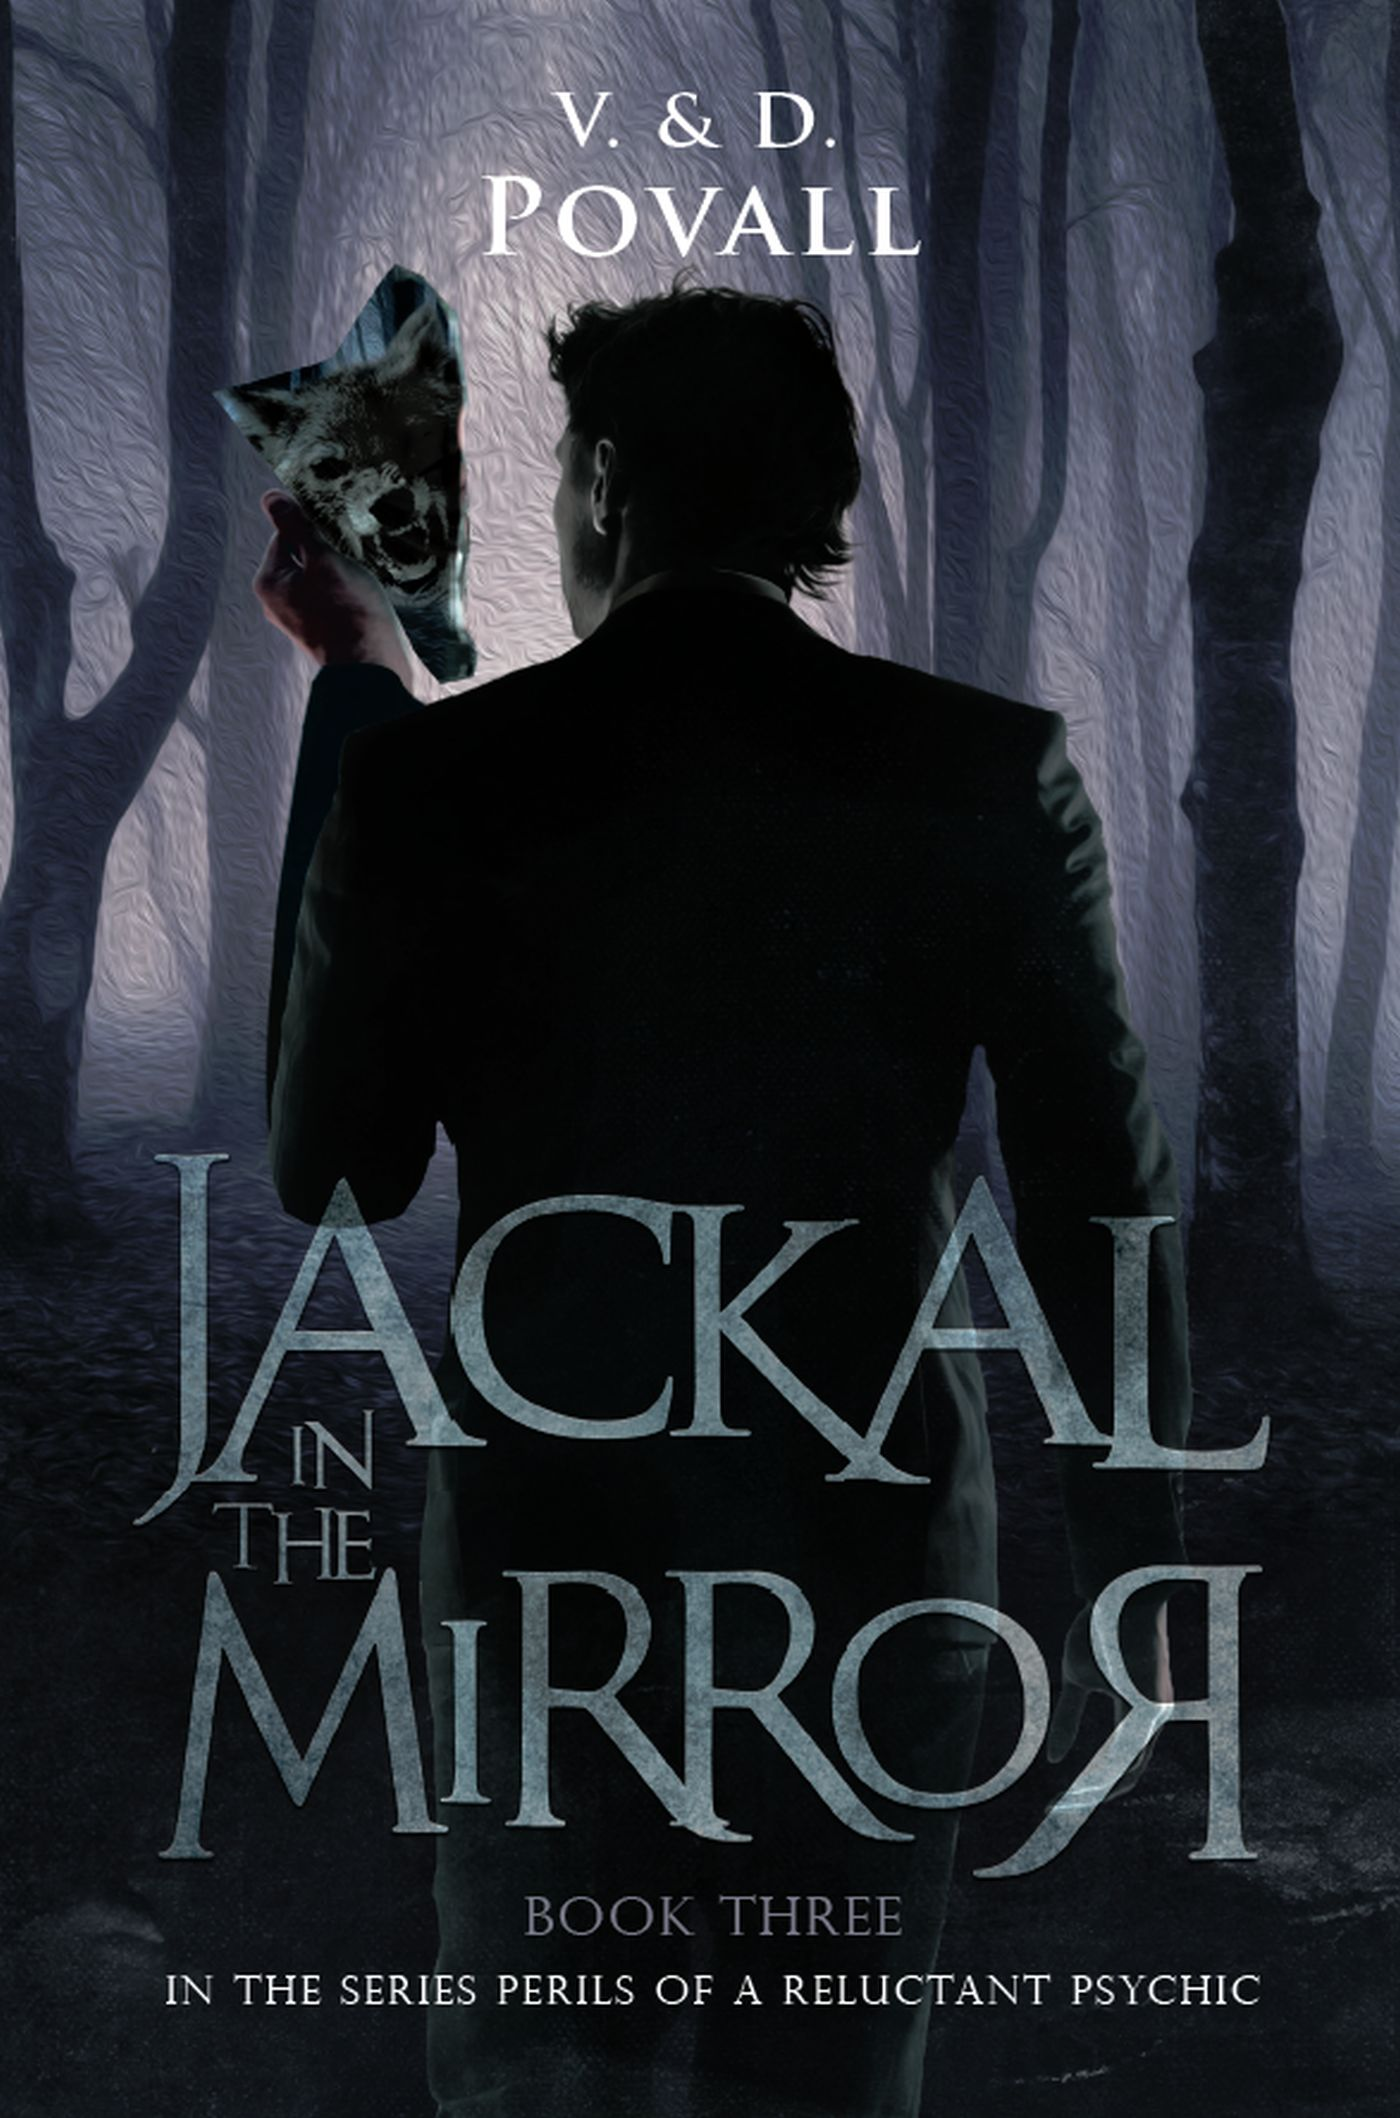 Jackal in the Mirror Book Cover